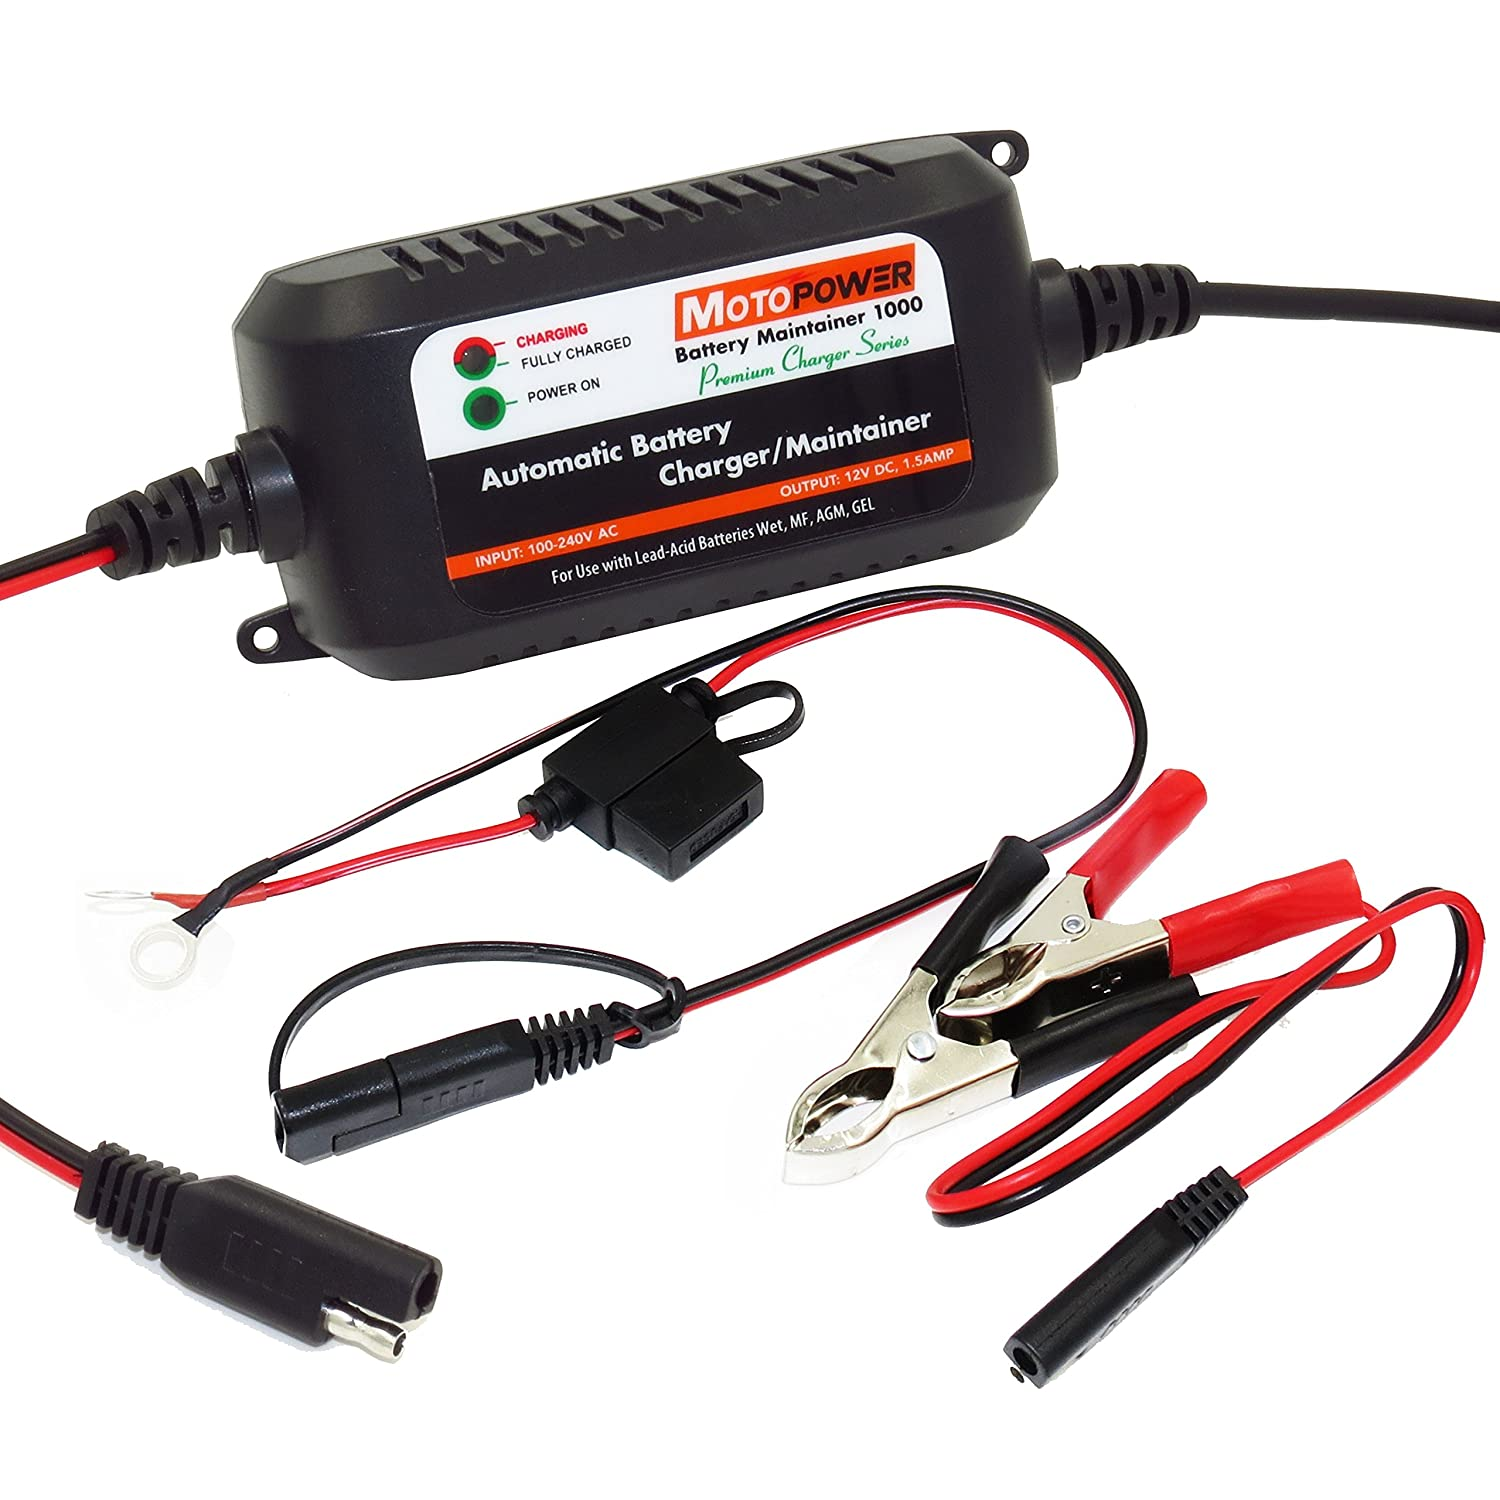 Motopower Mp00206a 12v 15amp Fully Automatic Battery Powered Lead Acid Charger With Indicator Maintainer For Cars Motorcycles Atvs Rvs Powersports Boat And More